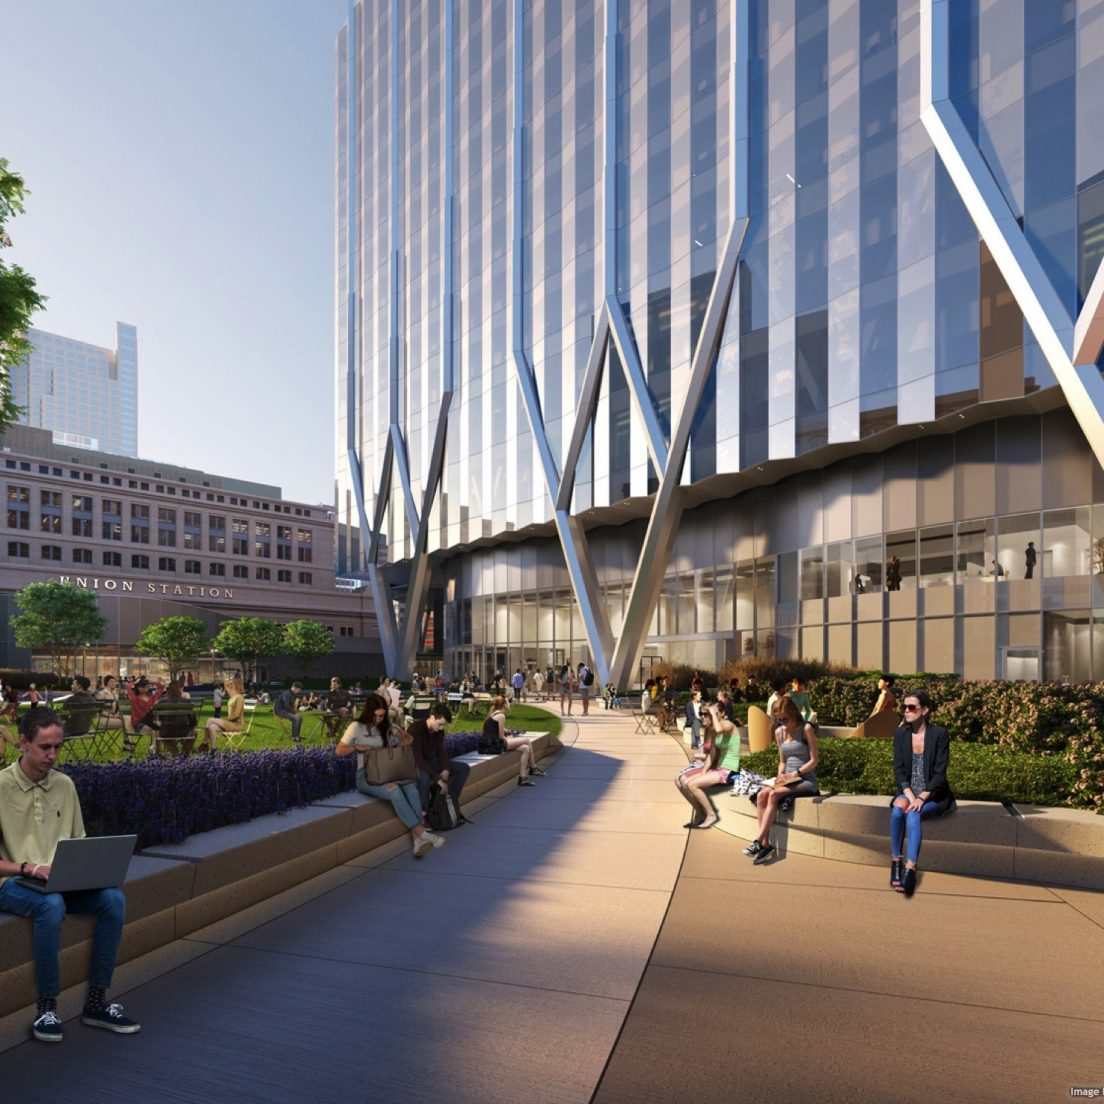 2019 rendering of BMO Tower, formerly Union Station Tower. (Courtesy of Goettsch Partners.)